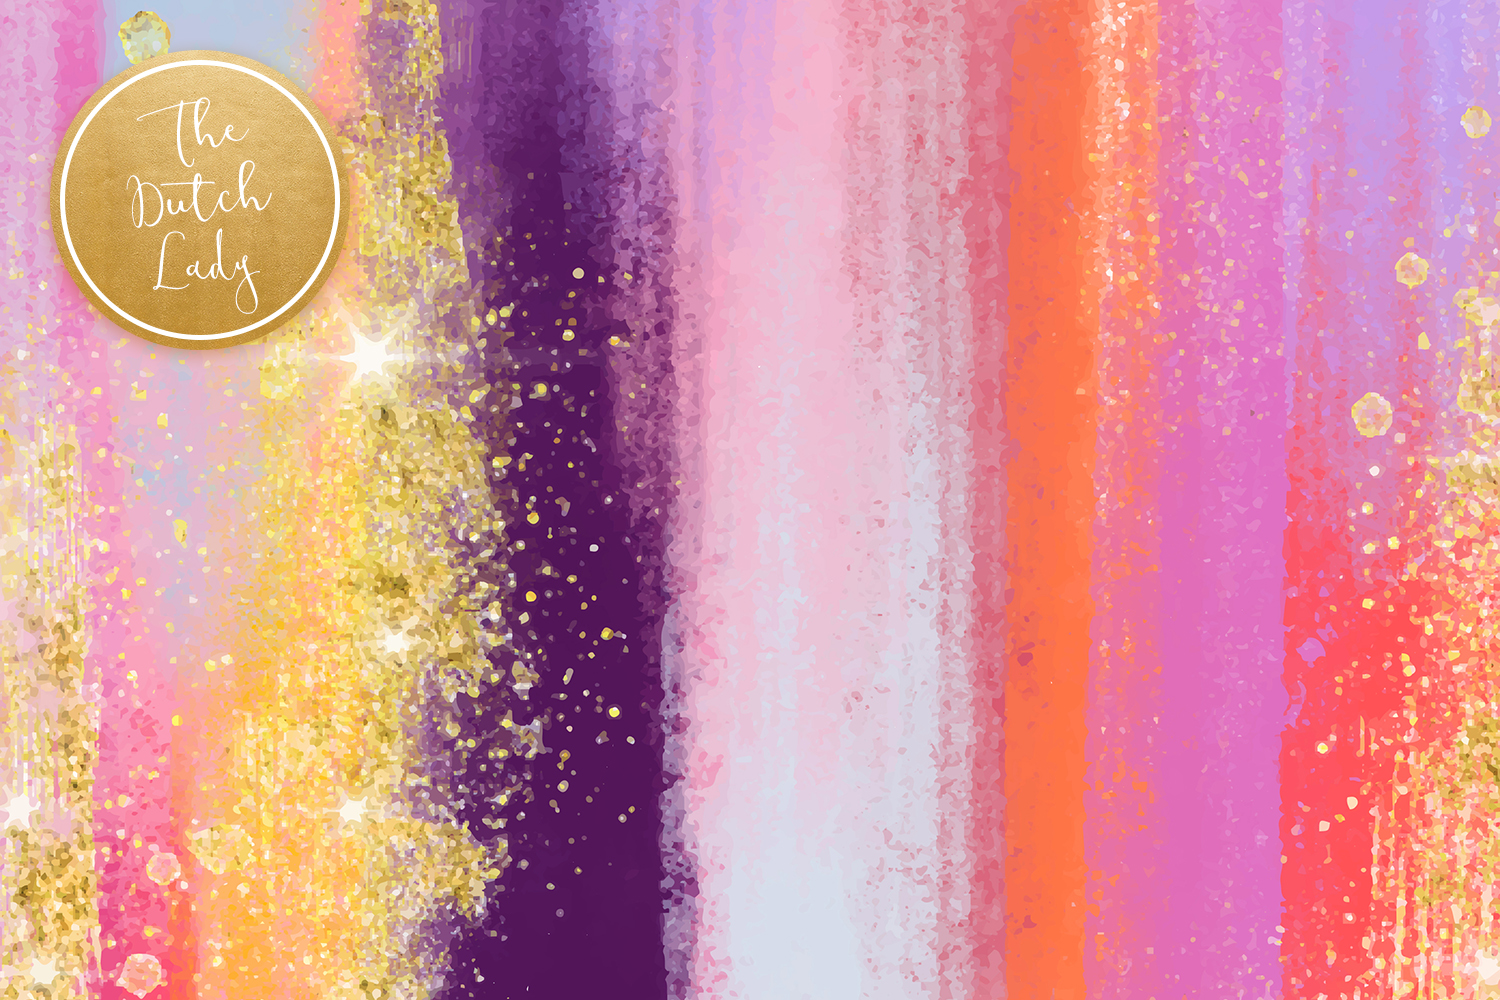 Colorful Brush Strokes & Stains Background Textures example image 5